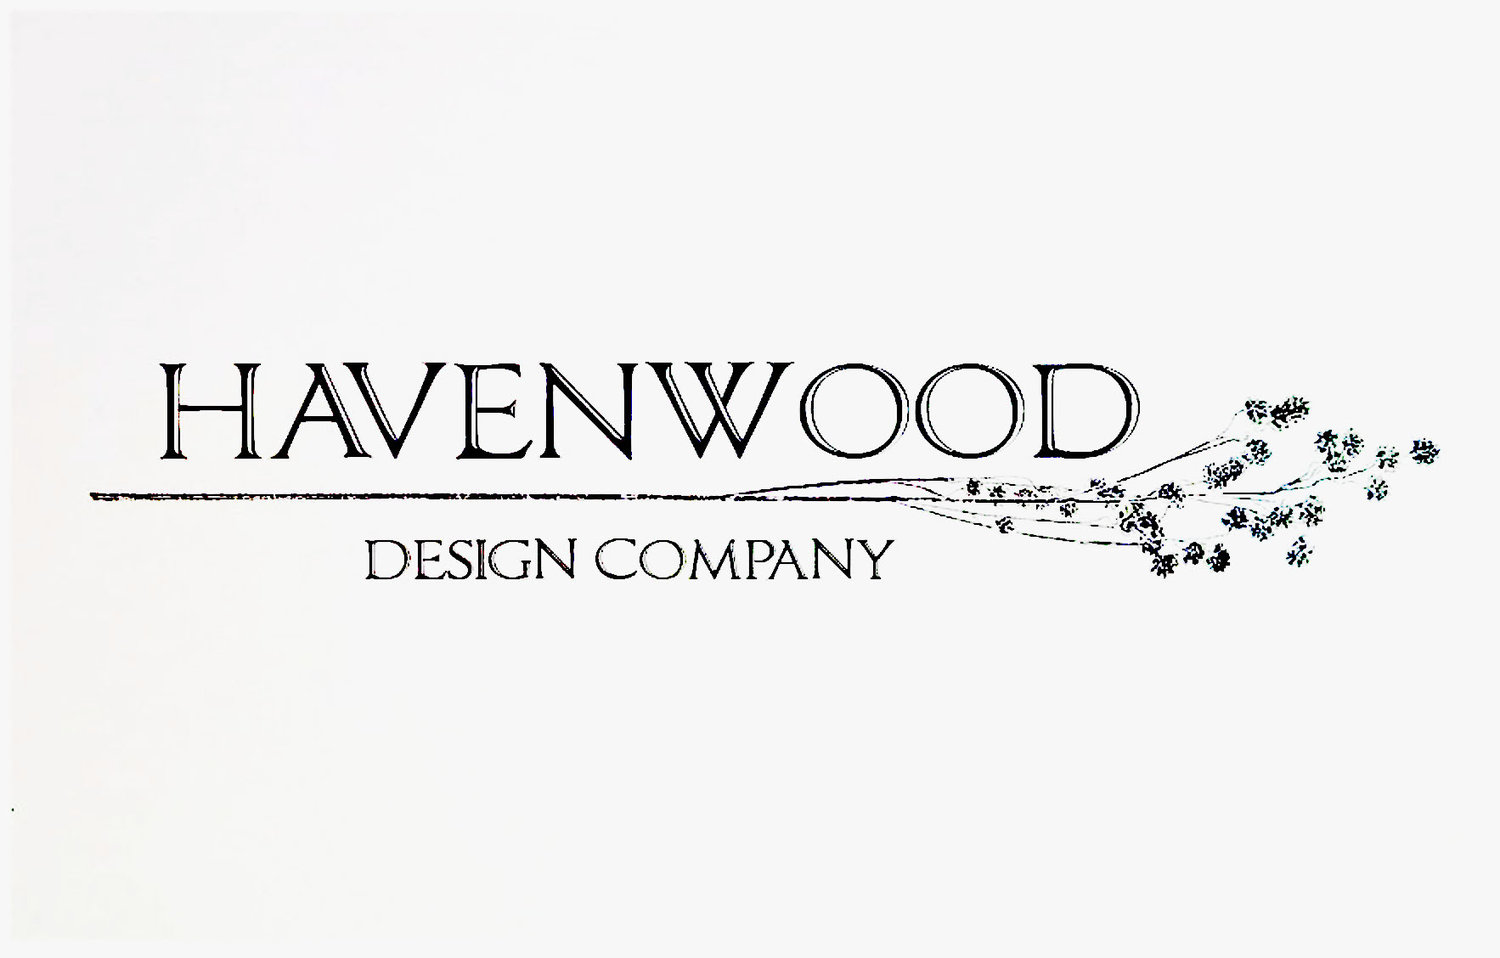 HAVENWOOD DESIGN COMPANY